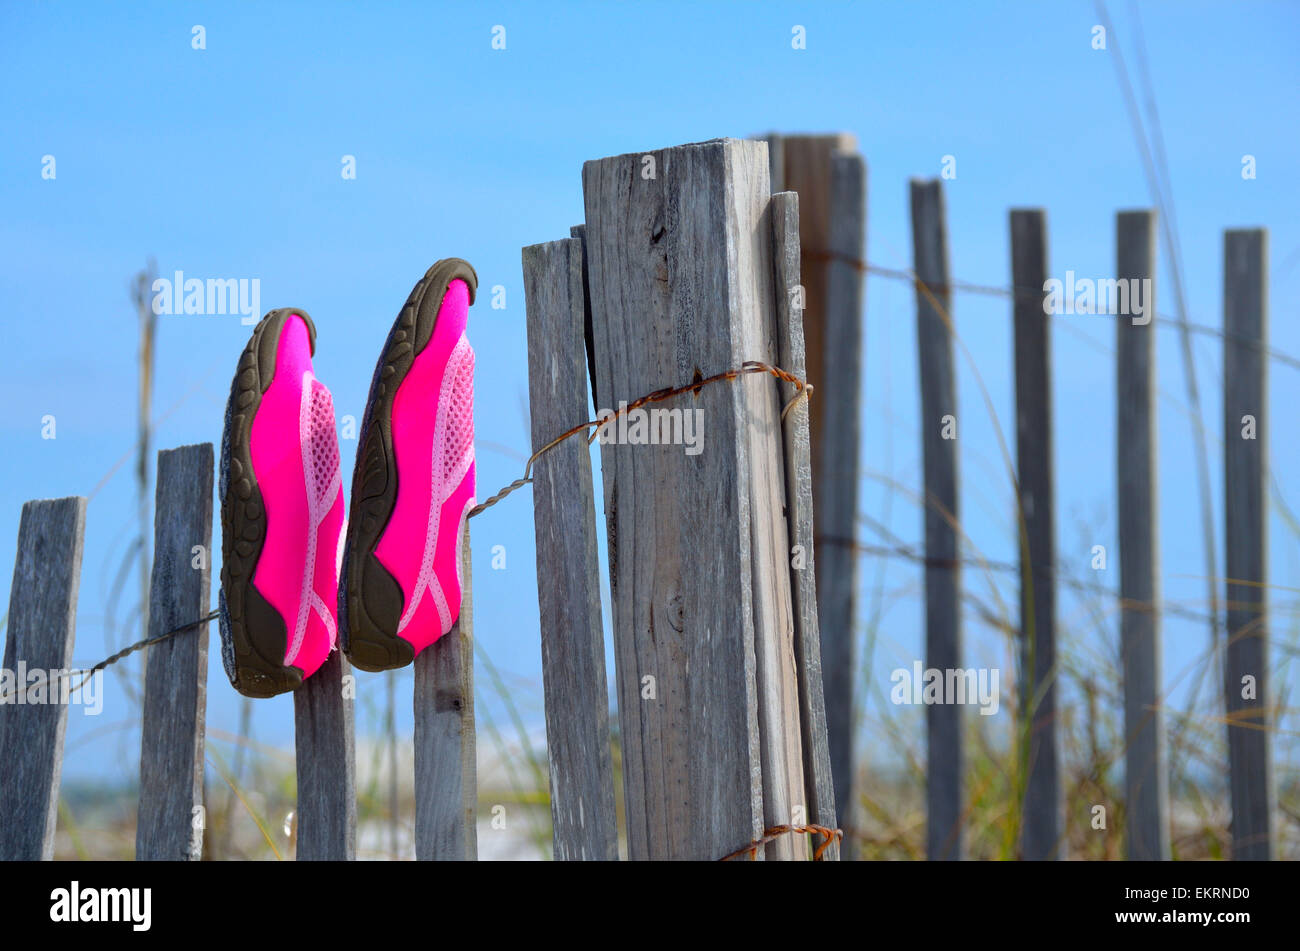 Hot pink beach shoes drying on a worn weathered wooden beach fence - Stock Image